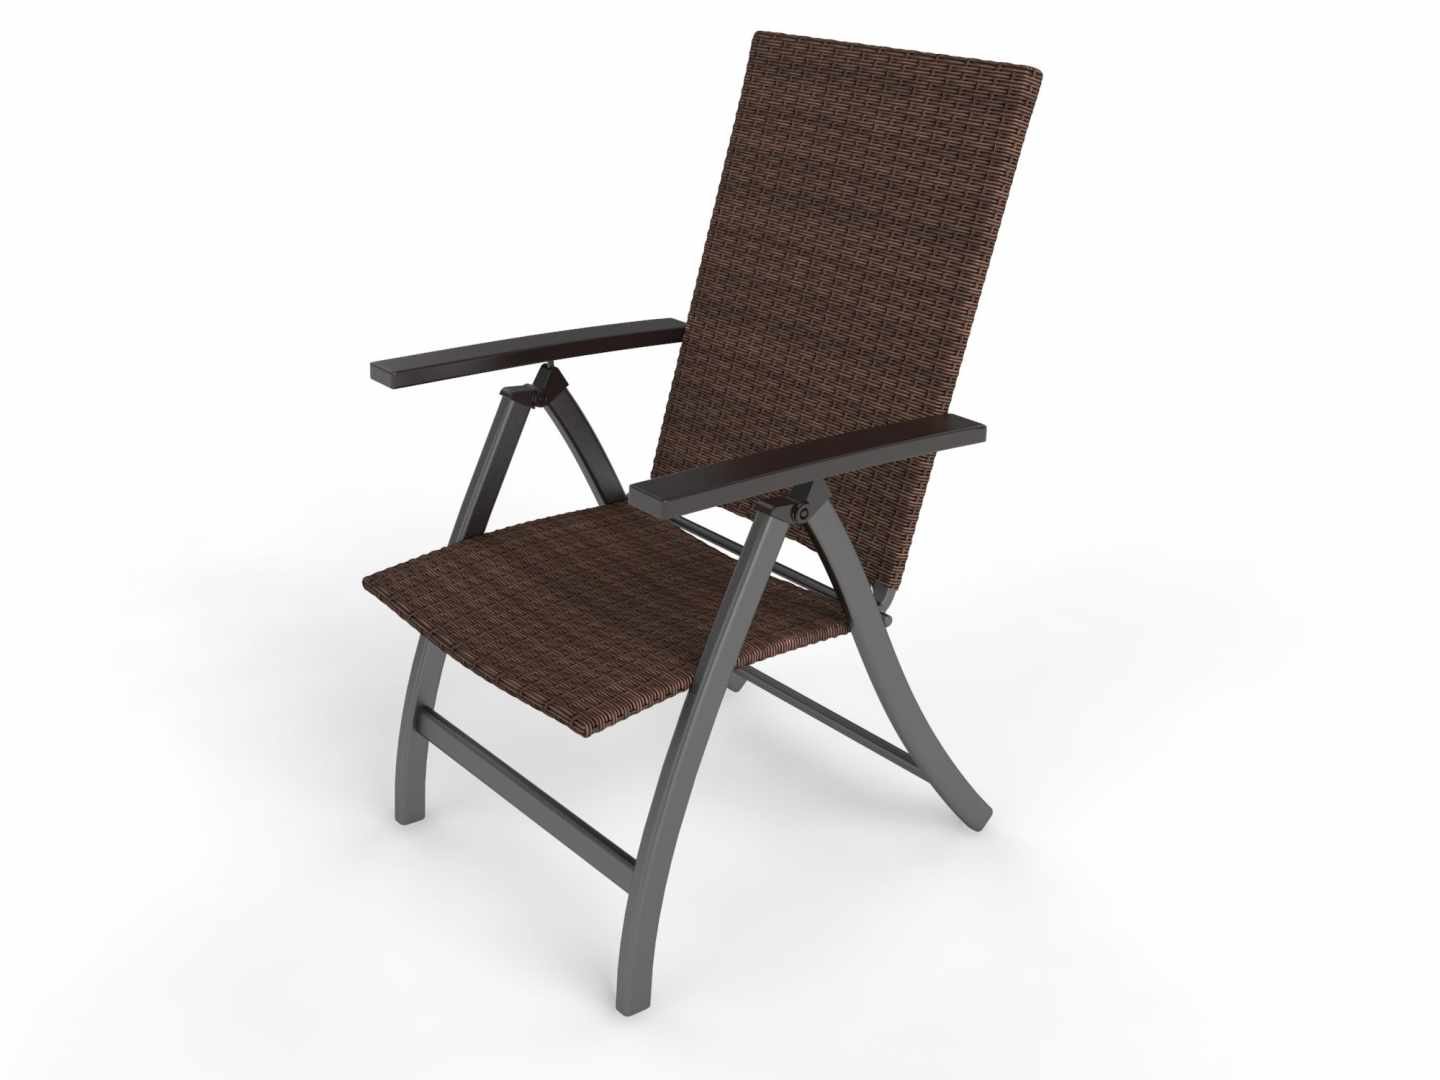 rattan deck chairs Set of 2 Foldable Chairs